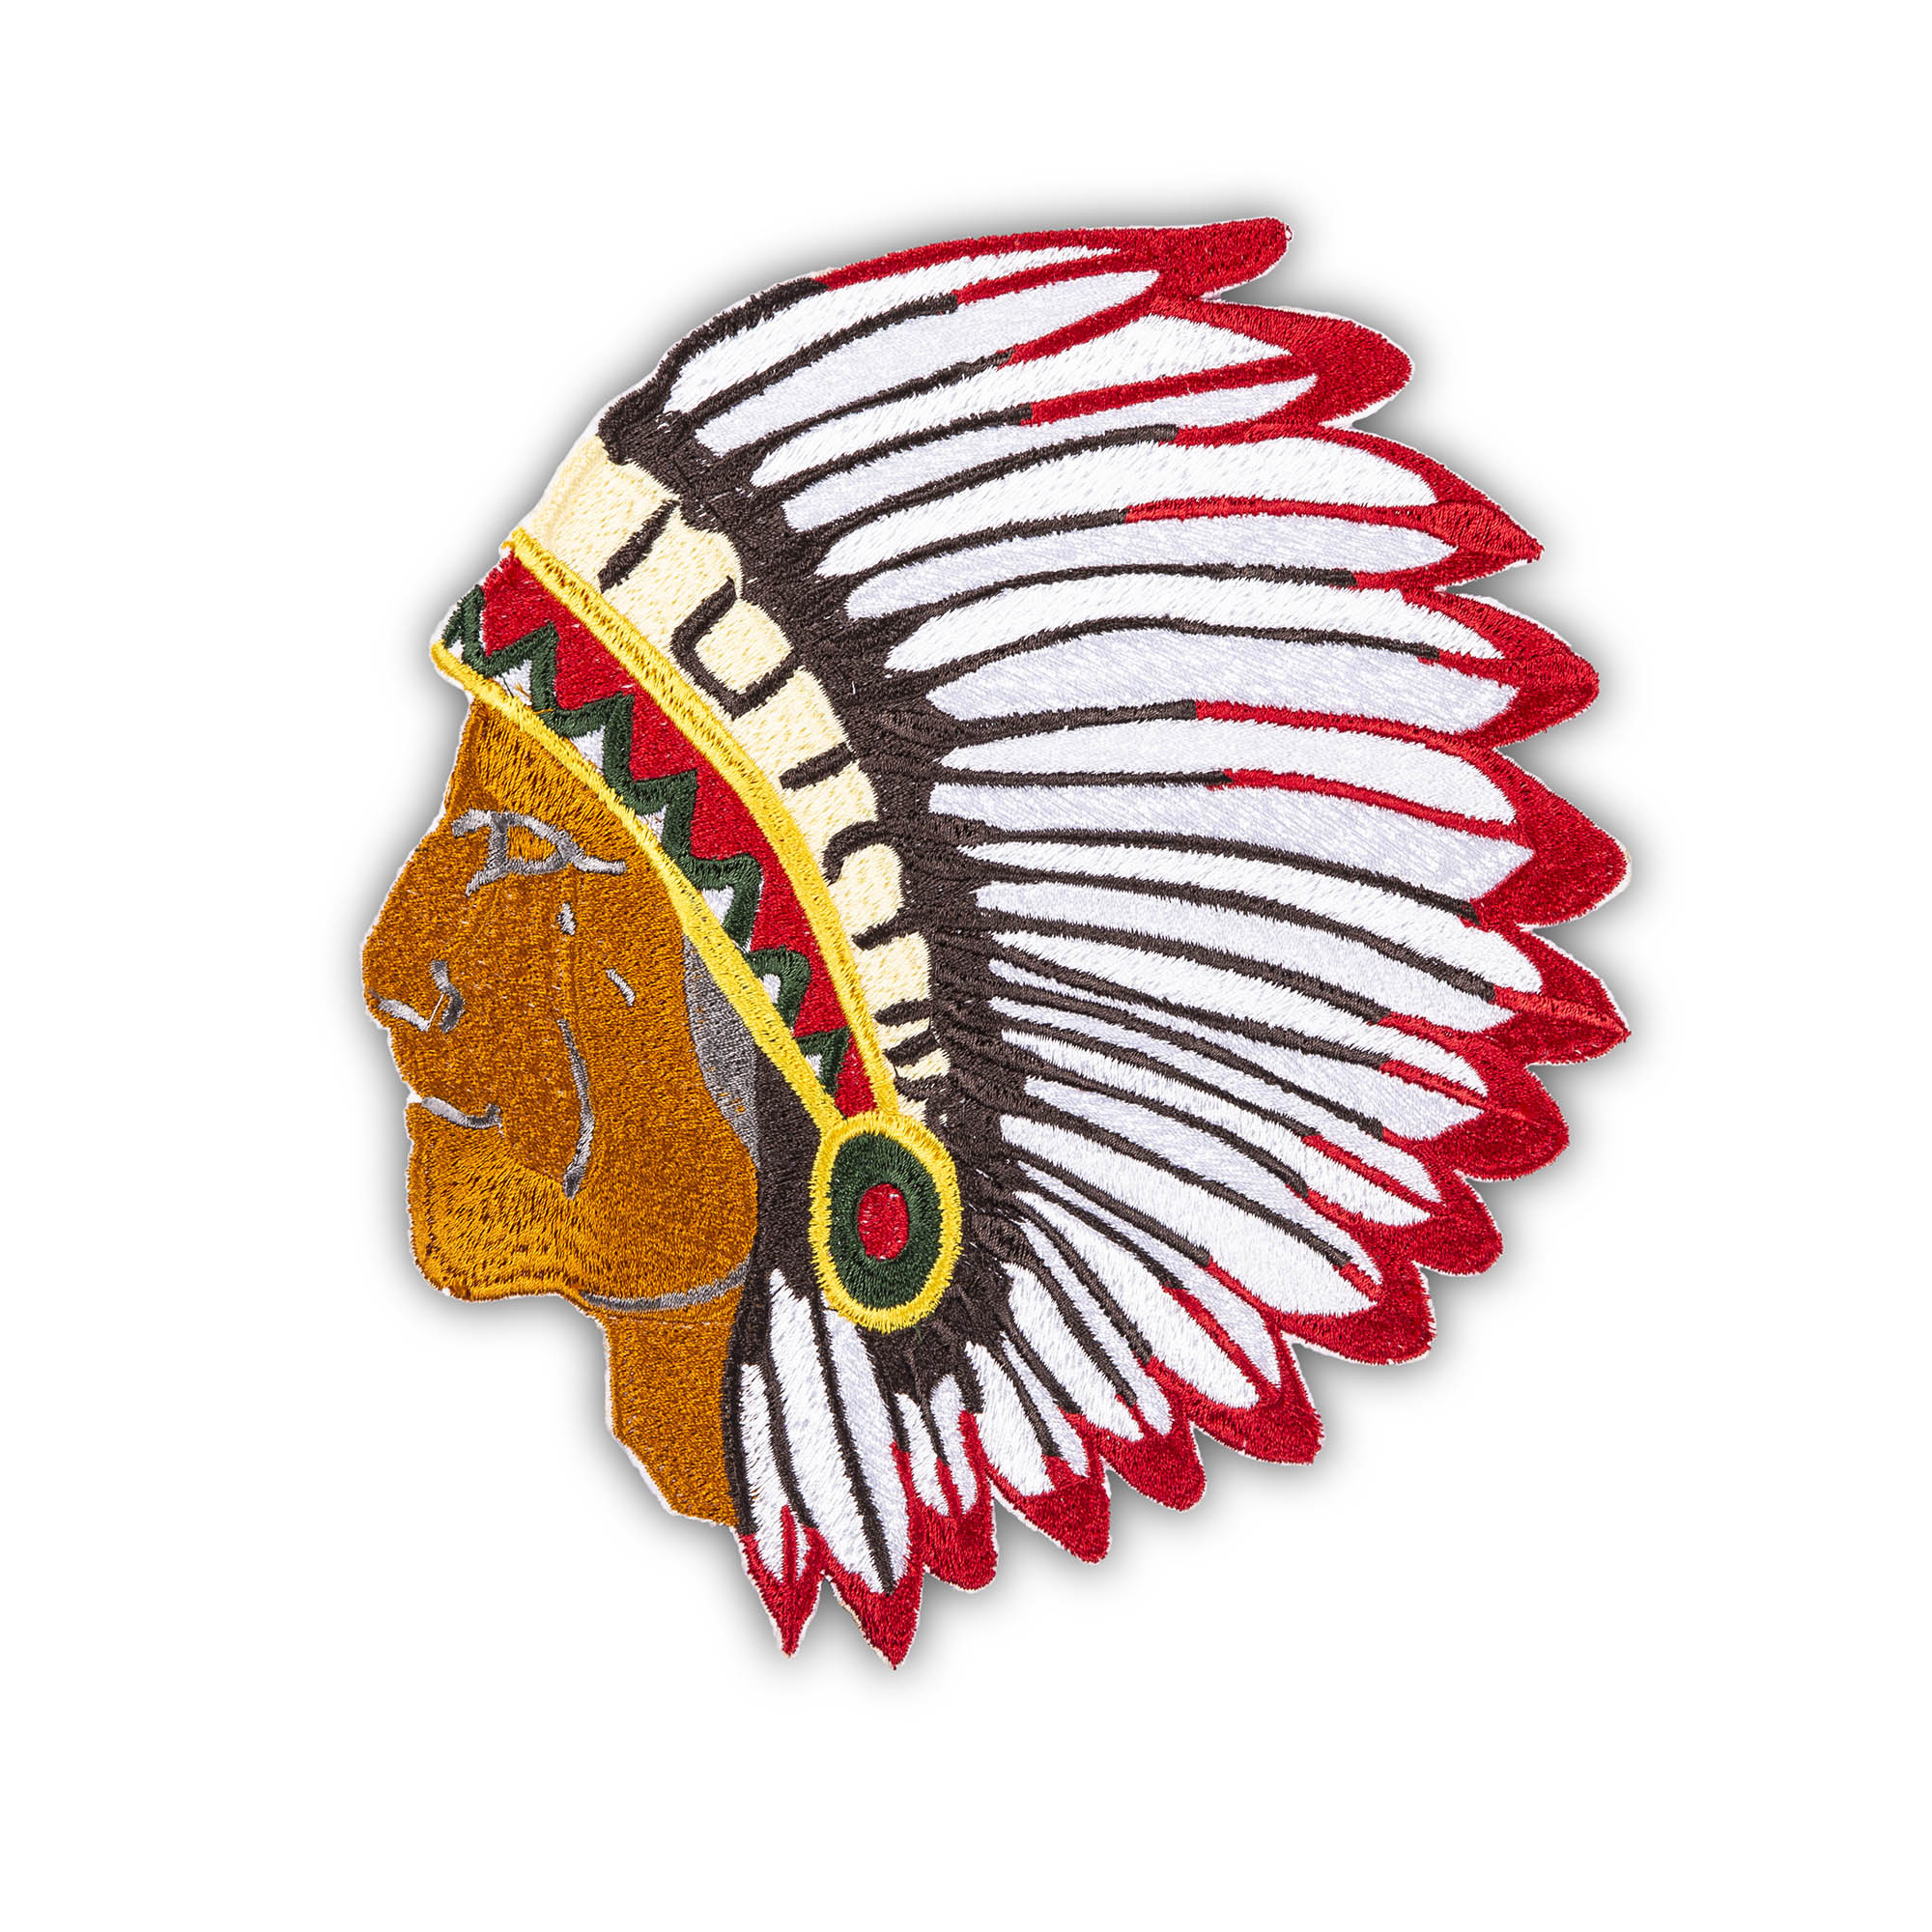 shangri-la-heritage-toro-seduto-indian-head-patch-front